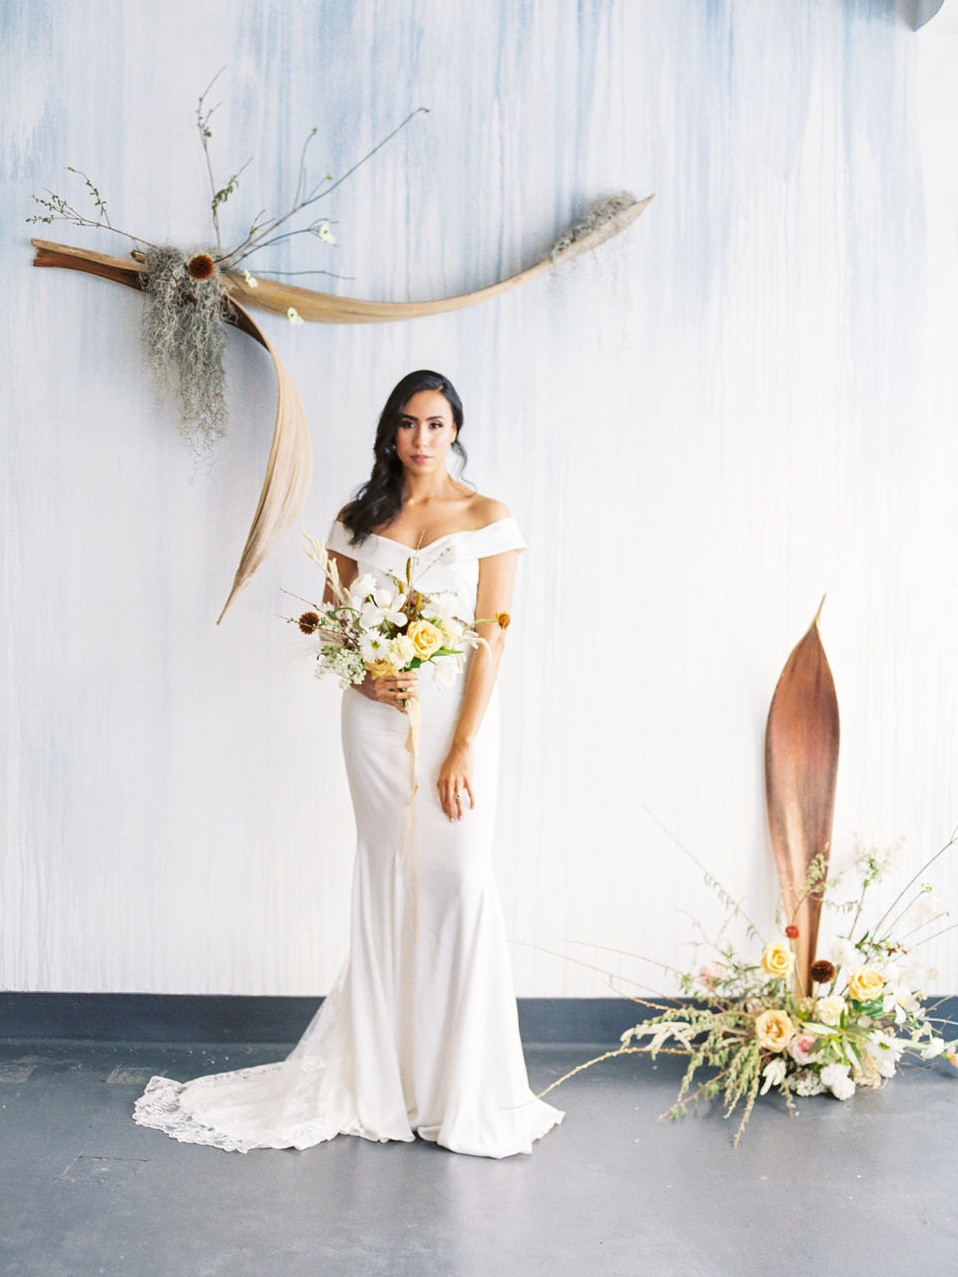 UNIQUE ORIGINAL FLORAL ARRANGEMENTS - Ash + Oak was beyond professional and easy going, we were not disappointed. If you want unique original floral arrangements for any occasion, I strongly recommend Ash + Oak.~Rebecca Barazza, Bride